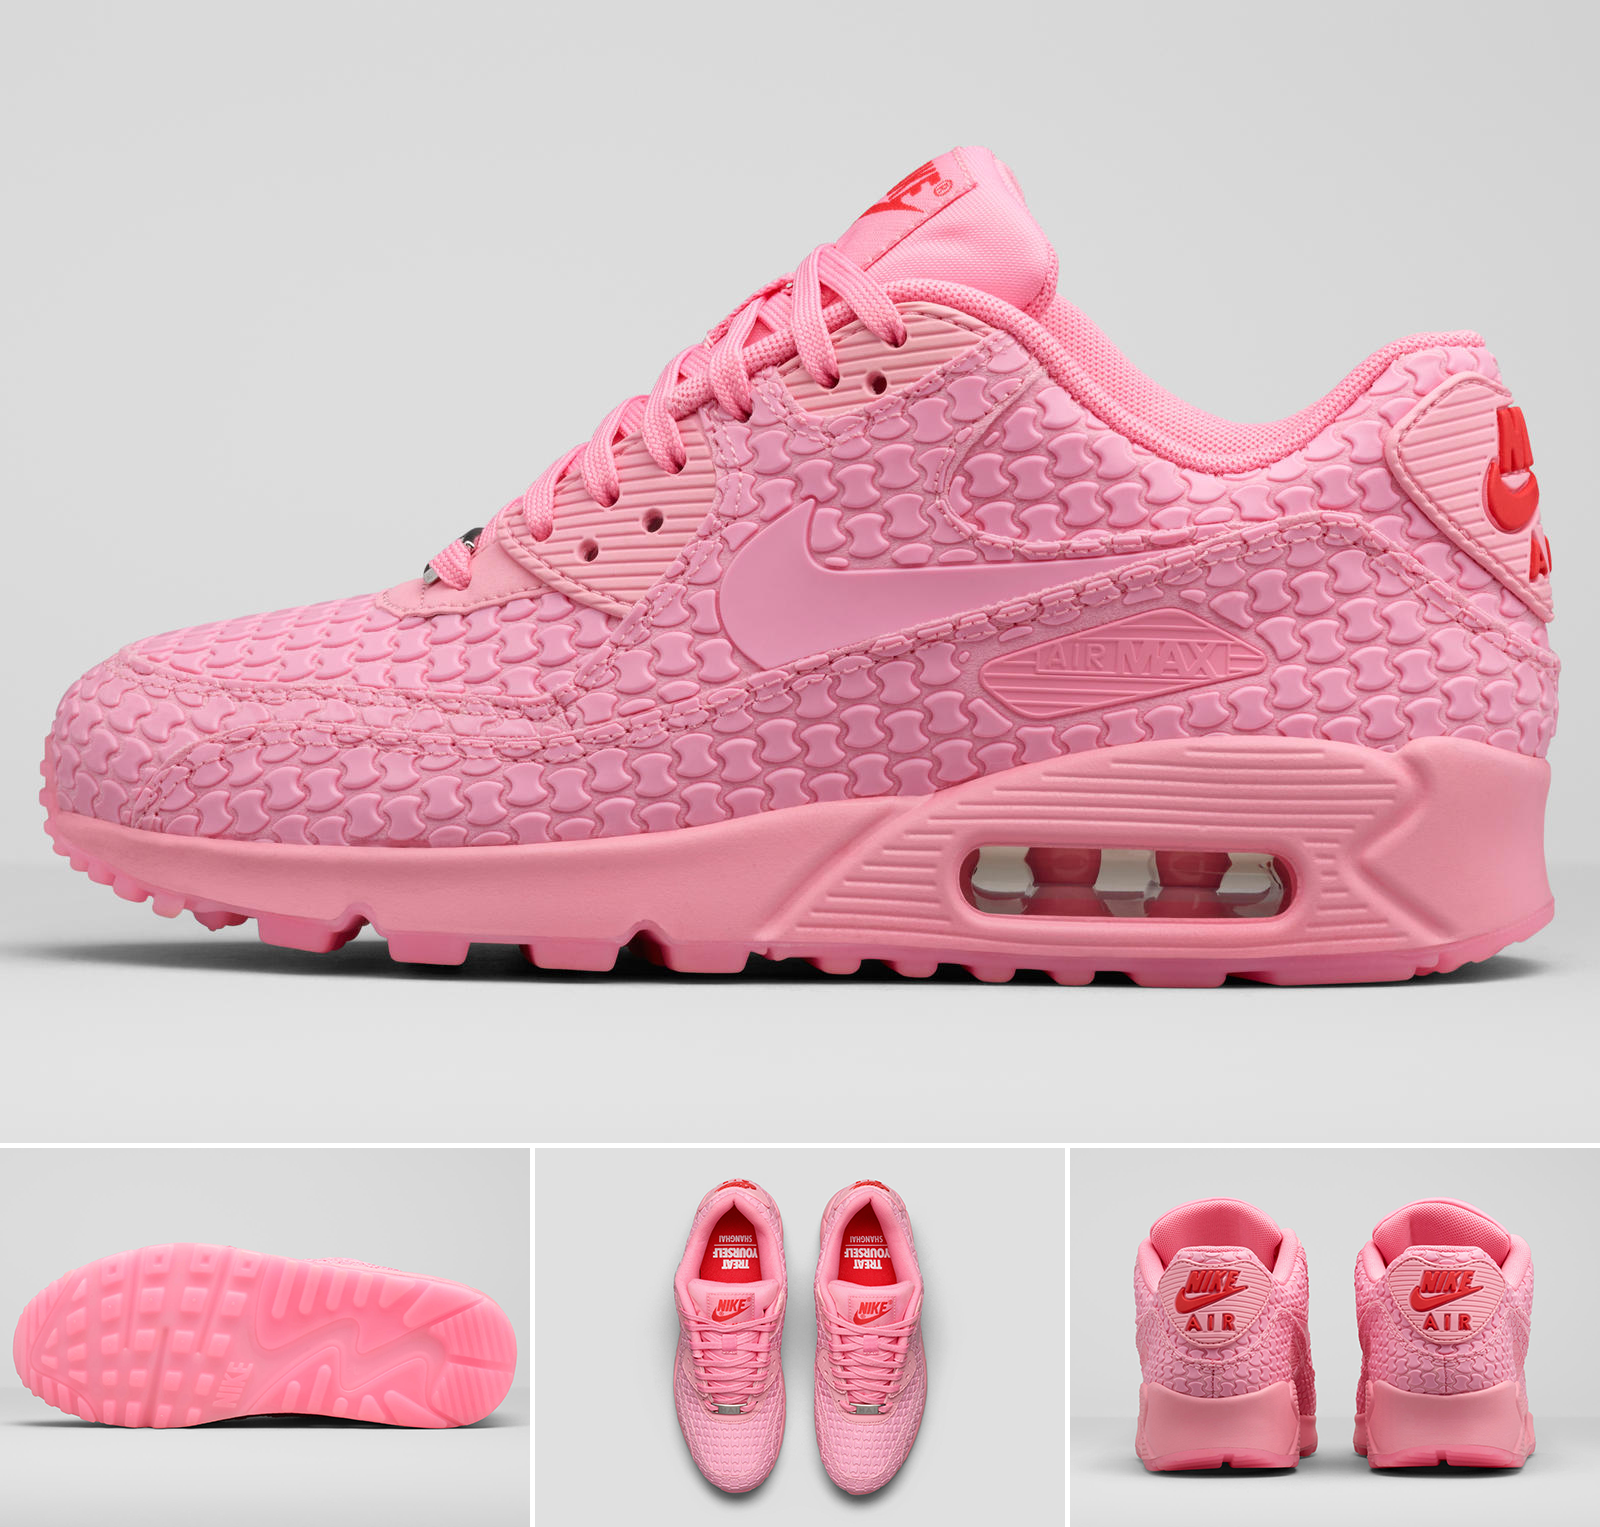 Nike-air-max-90-sweet-city-pack-shanghai-must-win-cake-2